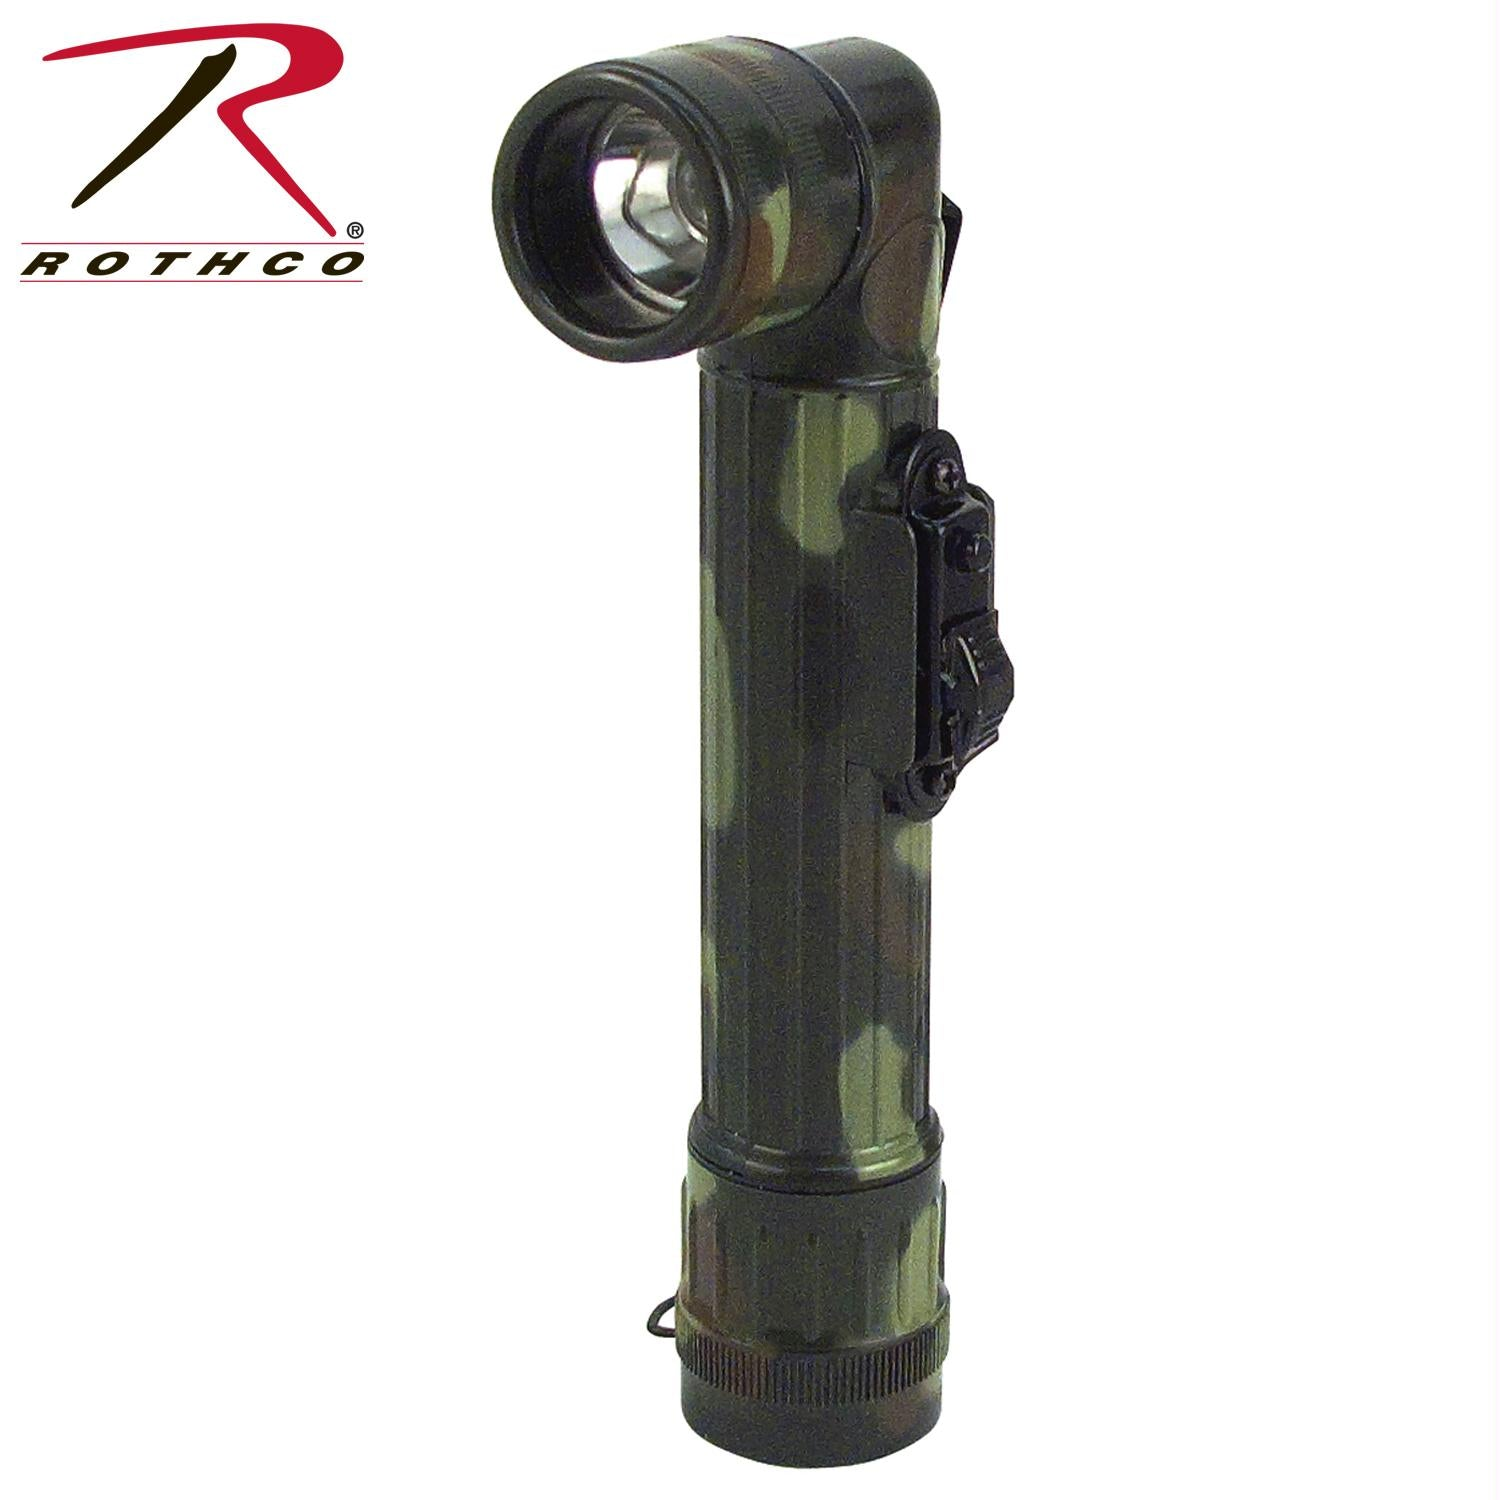 Rothco Mini Army Style Flashlight - Woodland Camo